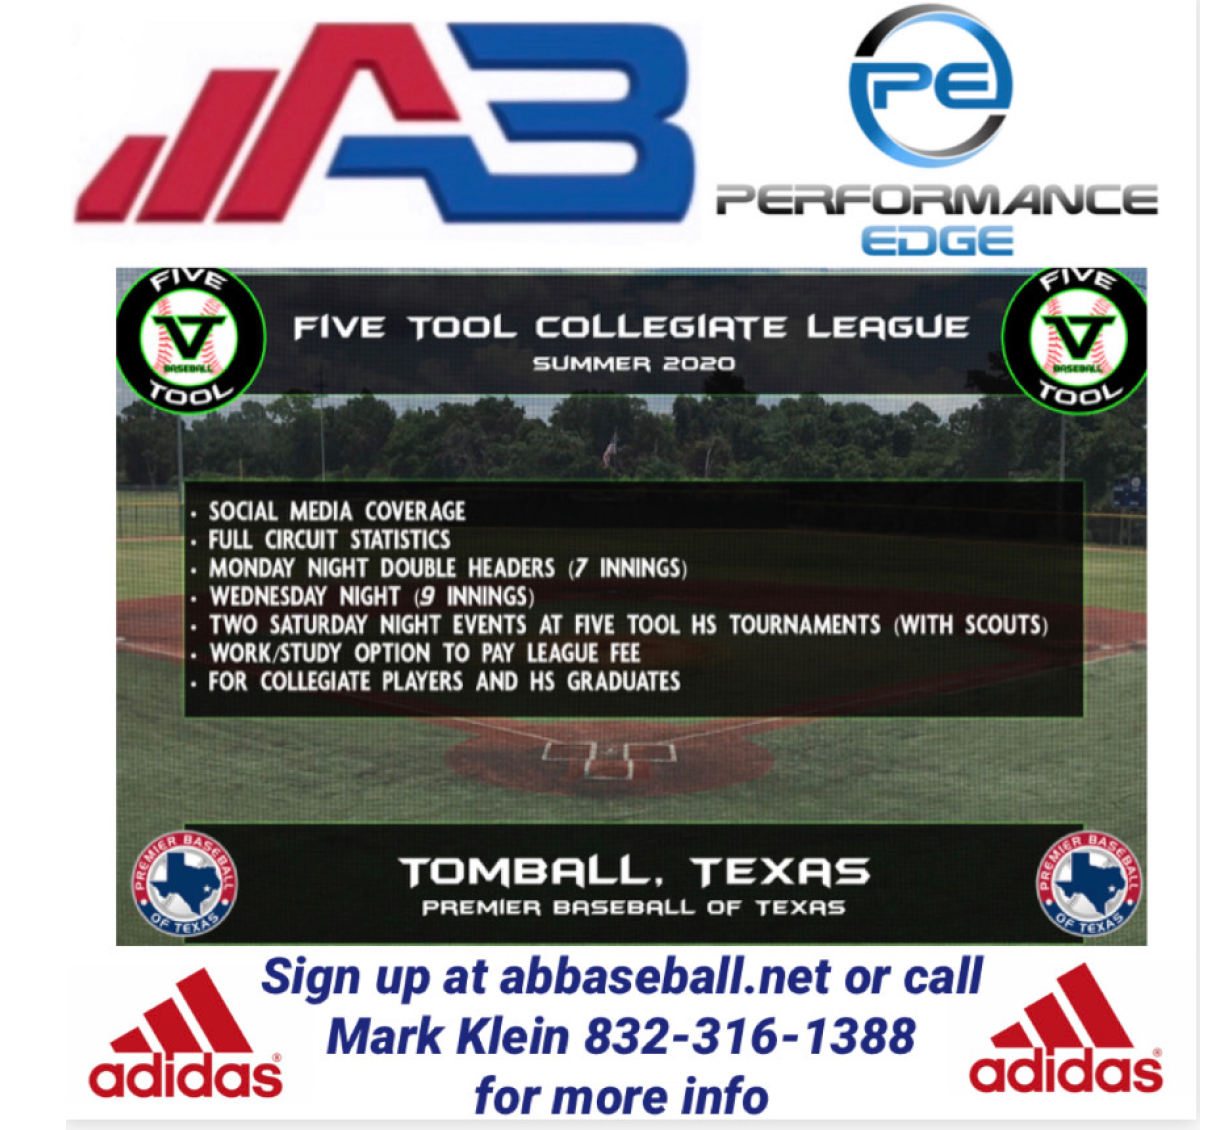 AB baseball / Performance Edge ---Five Tool Collegiate League ---Pitcher only Fee